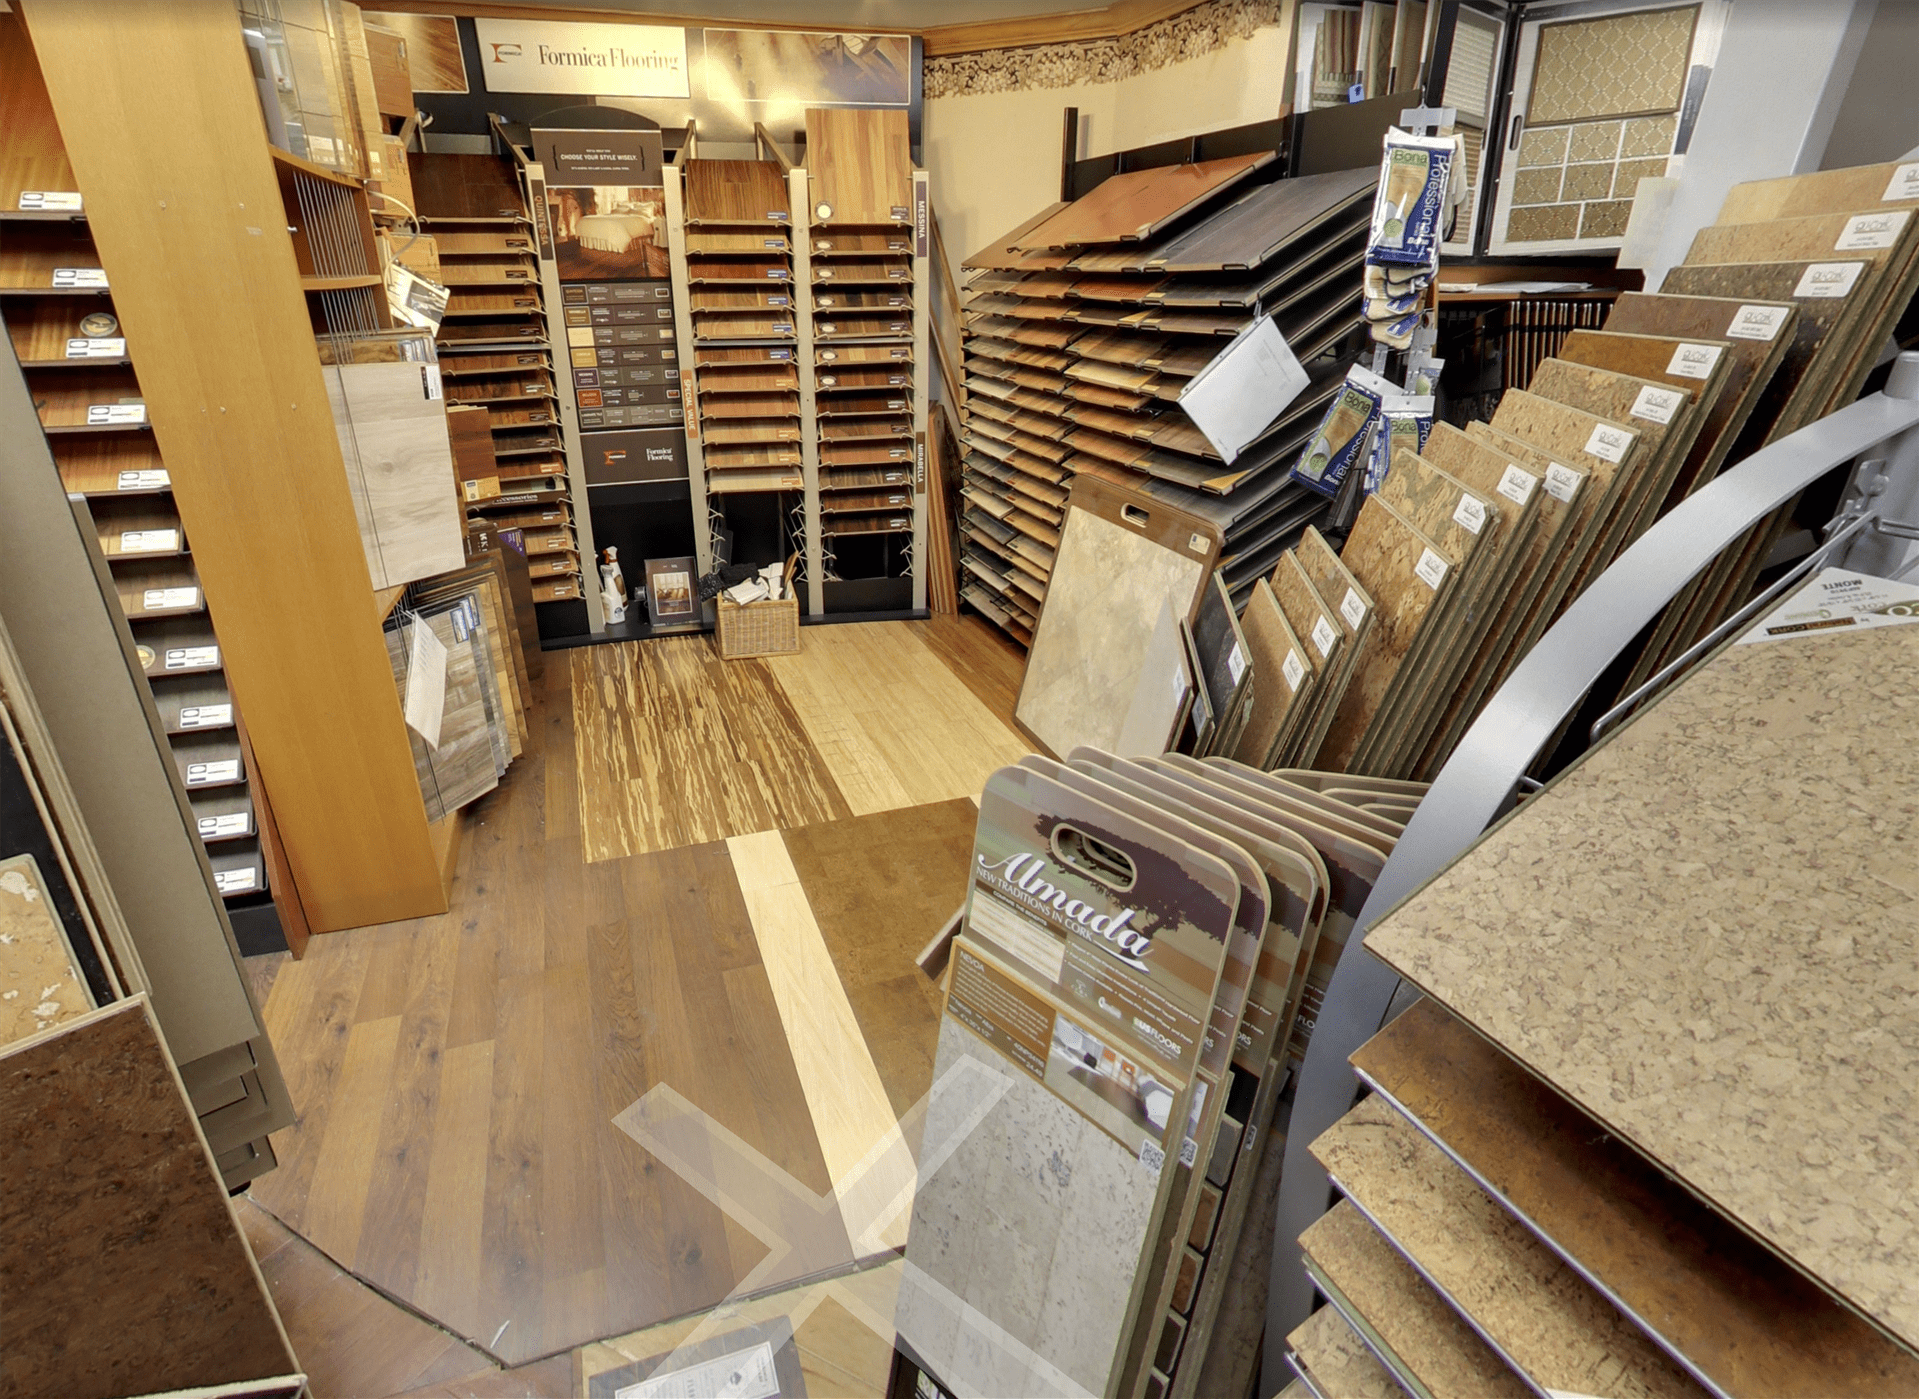 Cork flooring options for your Fairbanks, CA home from Geneva Flooring